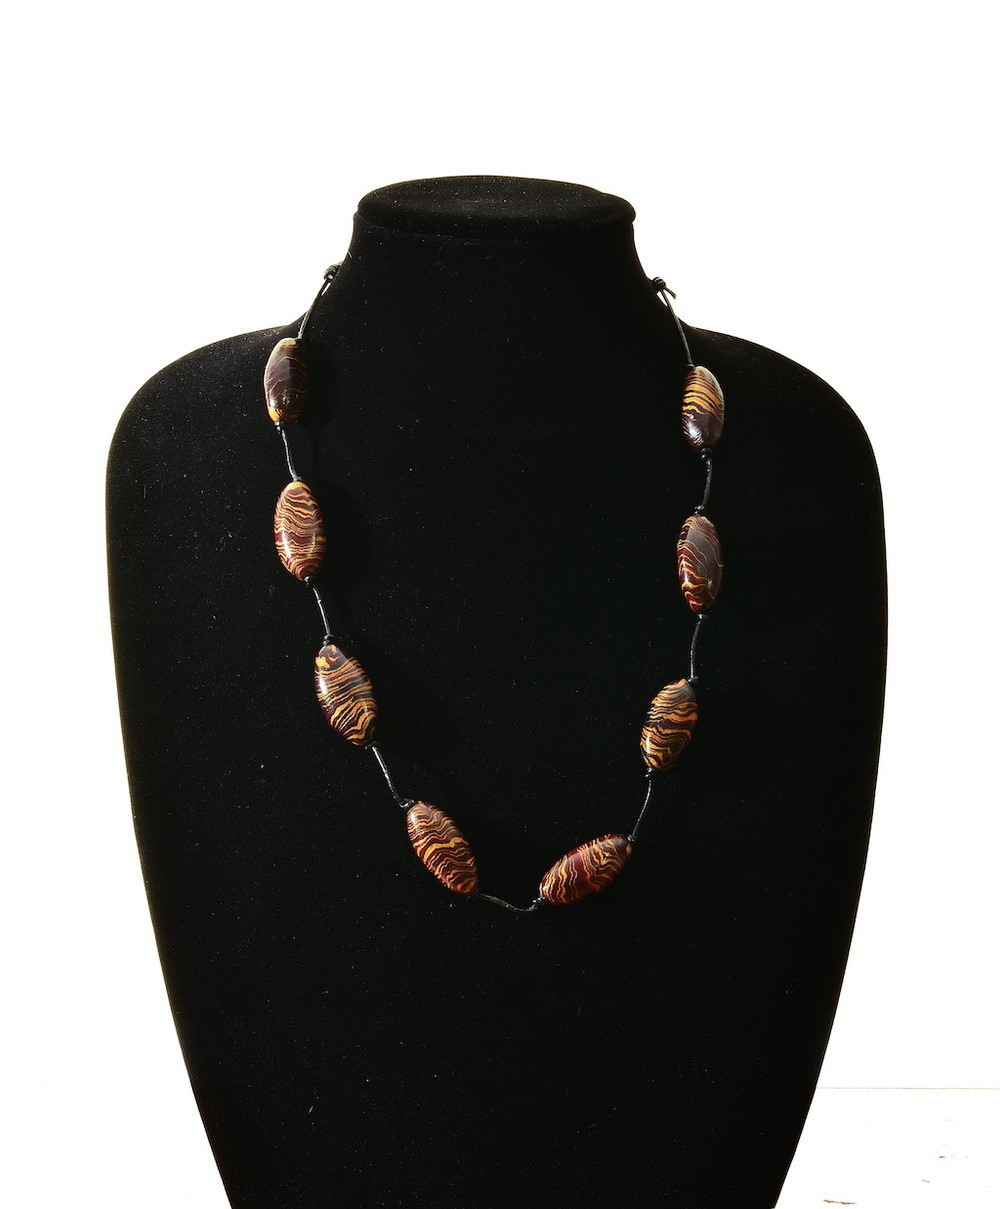 necklace 5.jpg